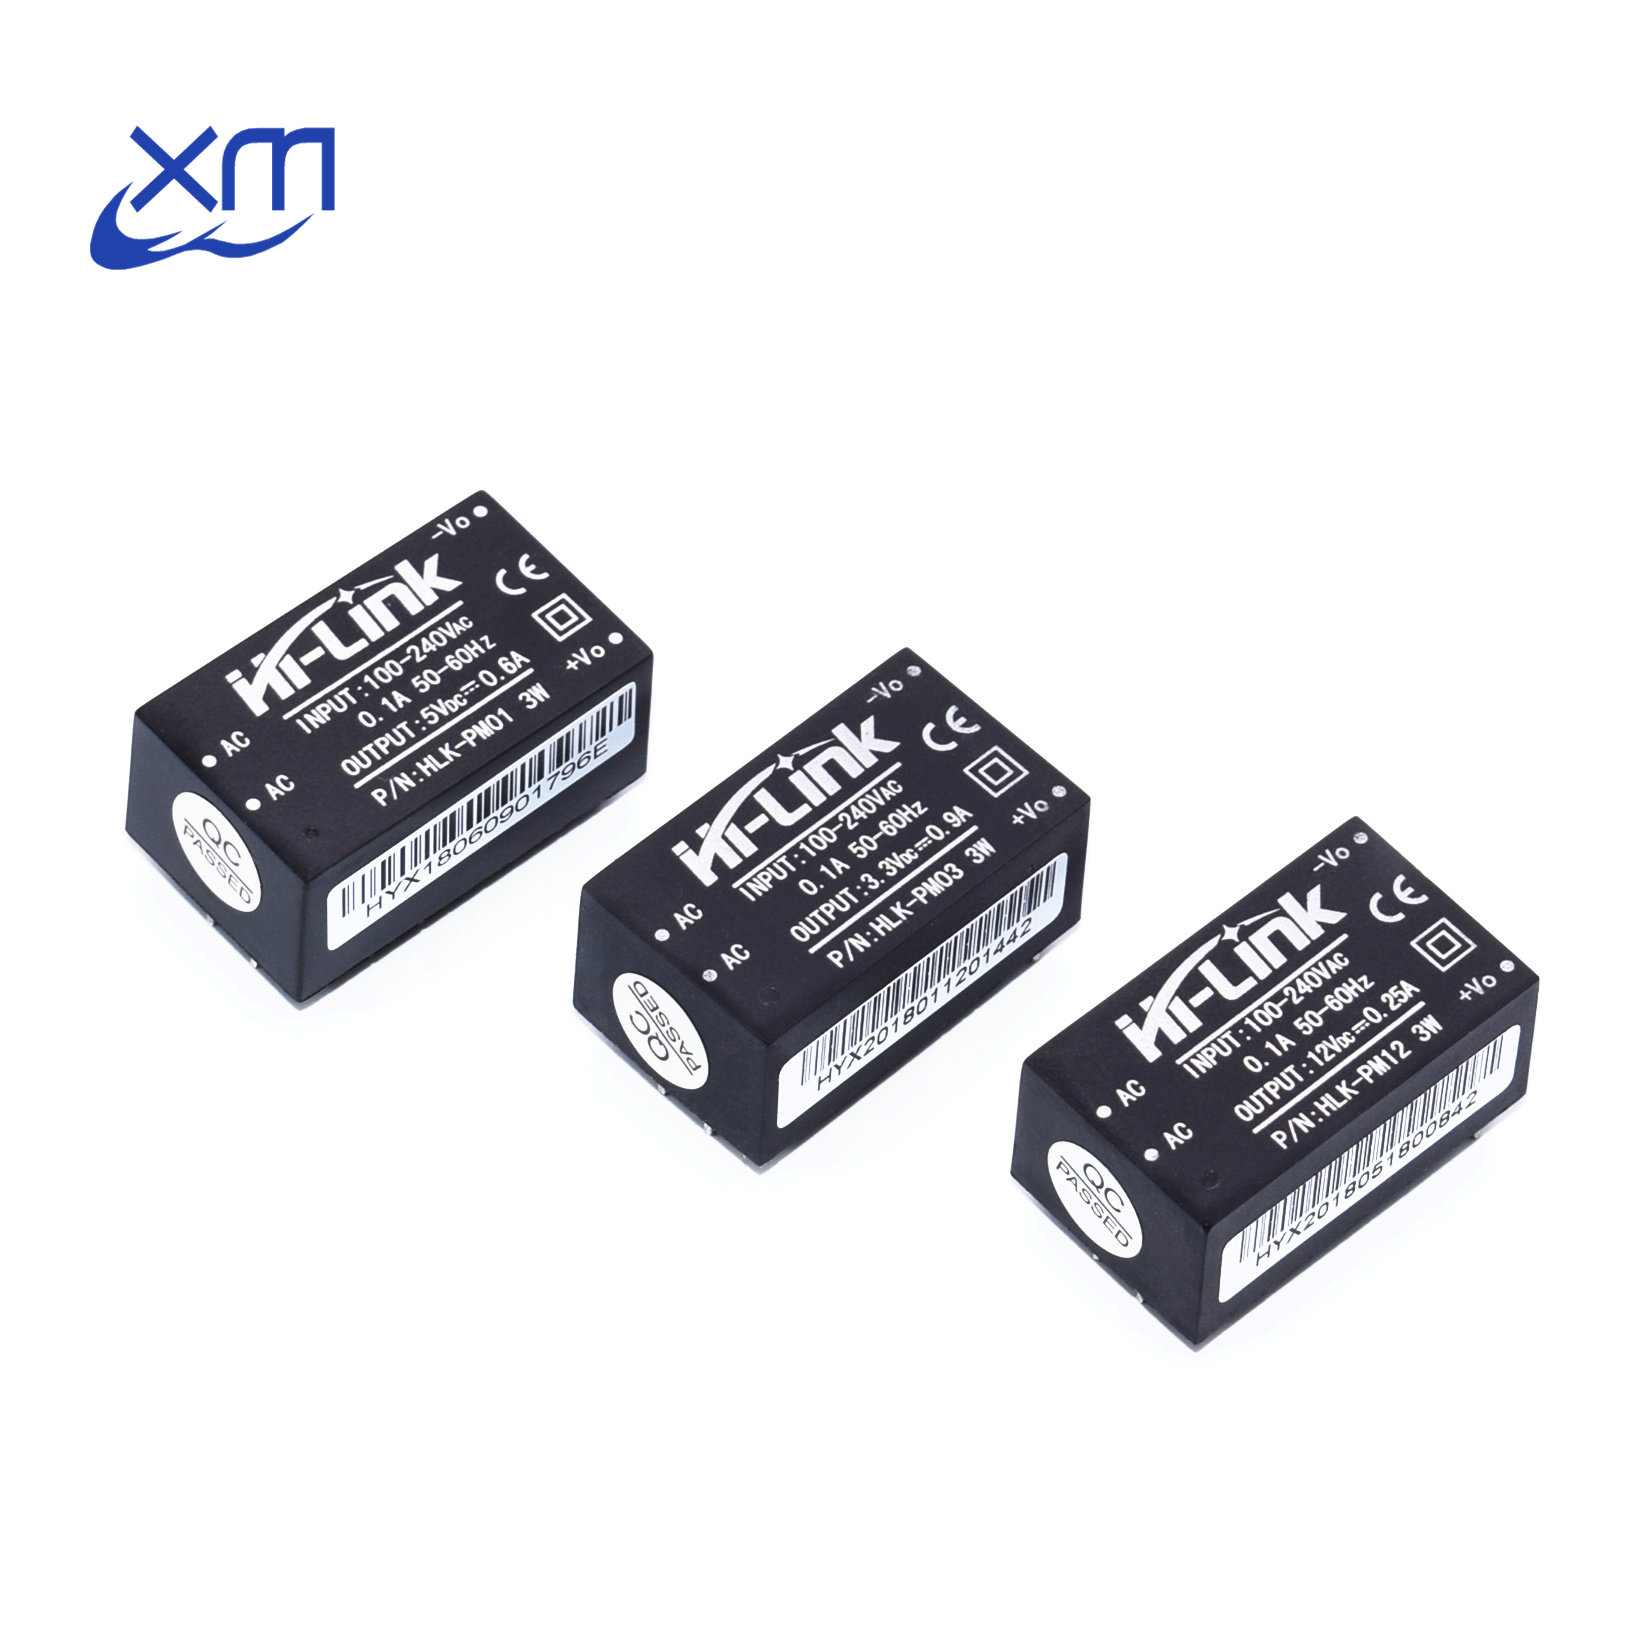 HLK-PM01 HLK-PM03 HLK-PM12 <font><b>AC</b></font>-<font><b>DC</b></font> 220V to 5V/<font><b>3.3V</b></font>/12V mini <font><b>power</b></font> <font><b>supply</b></font> <font><b>module</b></font>,intelligent household switch <font><b>power</b></font> <font><b>module</b></font> UL/CE image